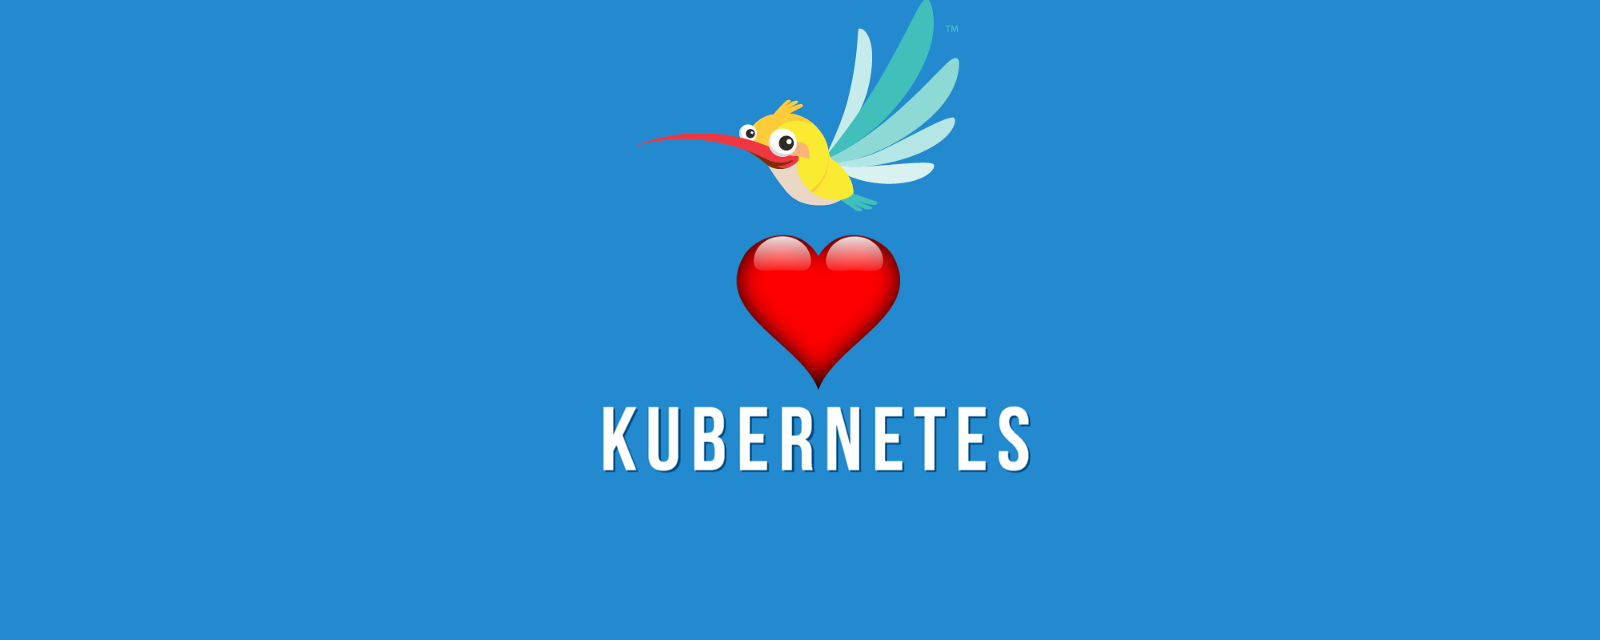 Deploying Flogo apps to Kubernetes - By Leon Stigter